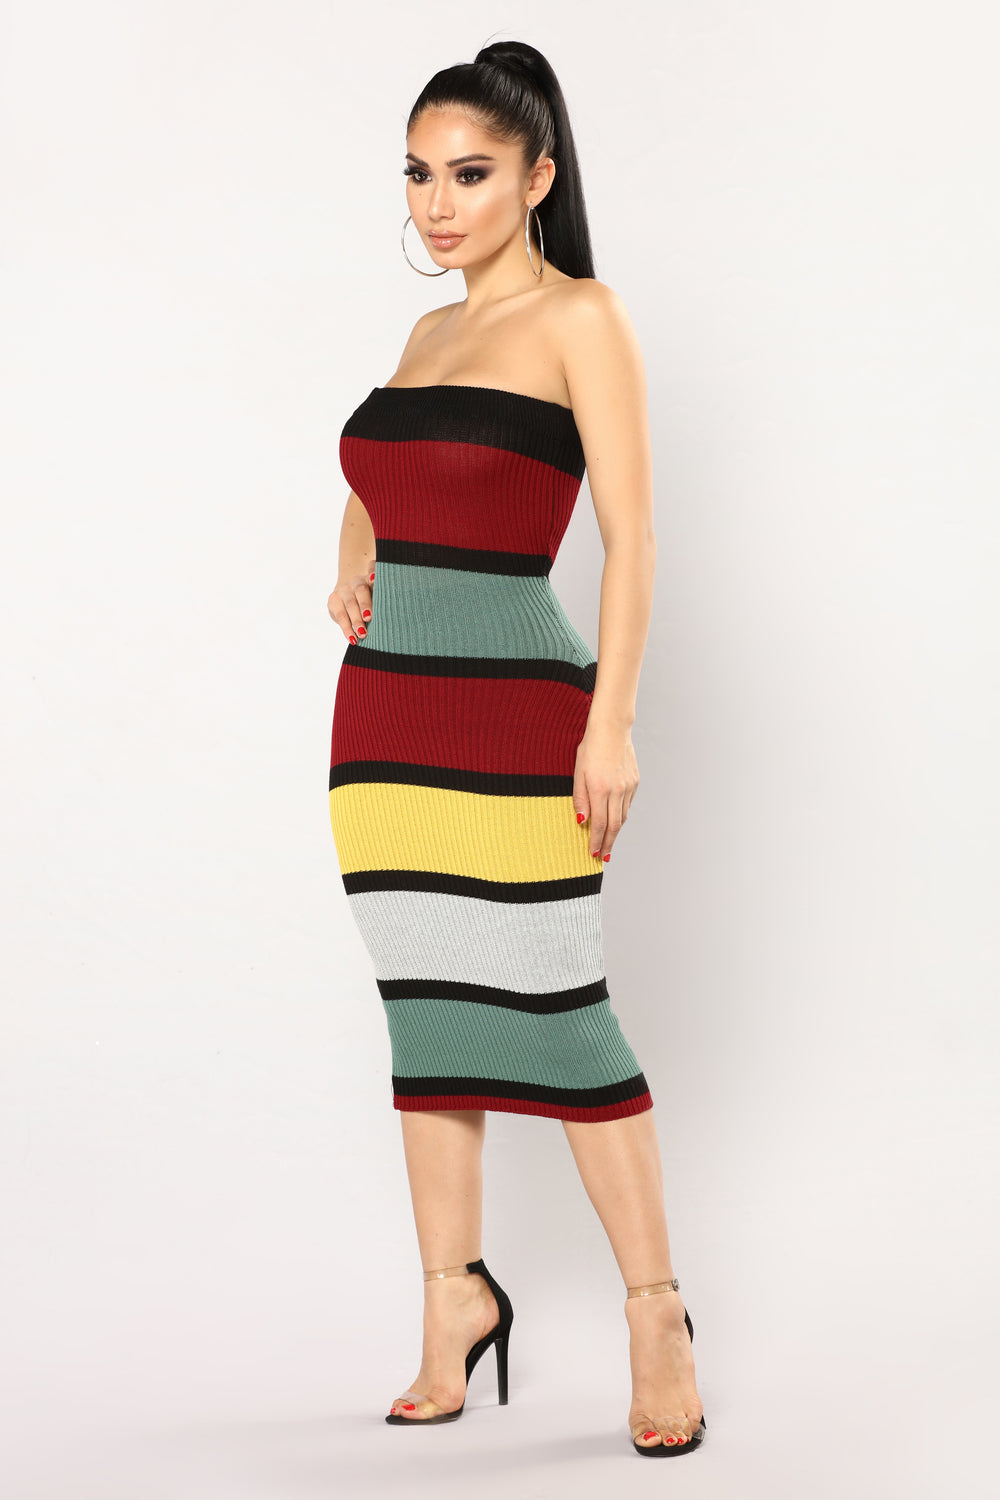 With Out You Stripe Dress - Mustard